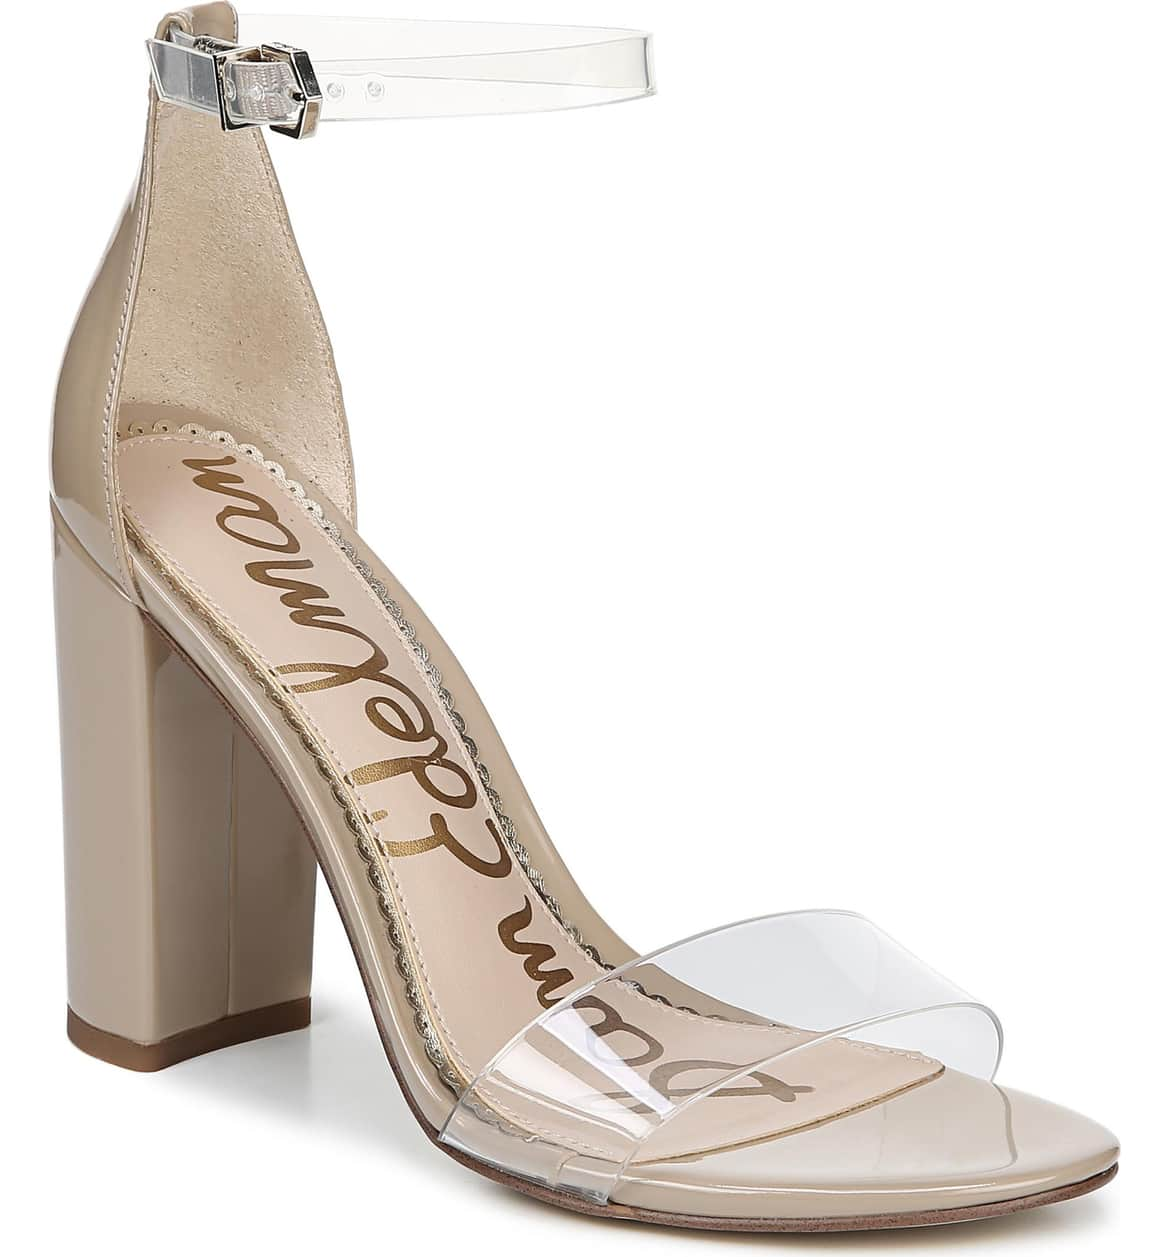 <p>Modern and minimalist, an essential ankle-strap sandal set on a chunky wrapped heel serves as a versatile go-to style. $119.95 (Image: Nordstrom){&nbsp;}</p><p></p>